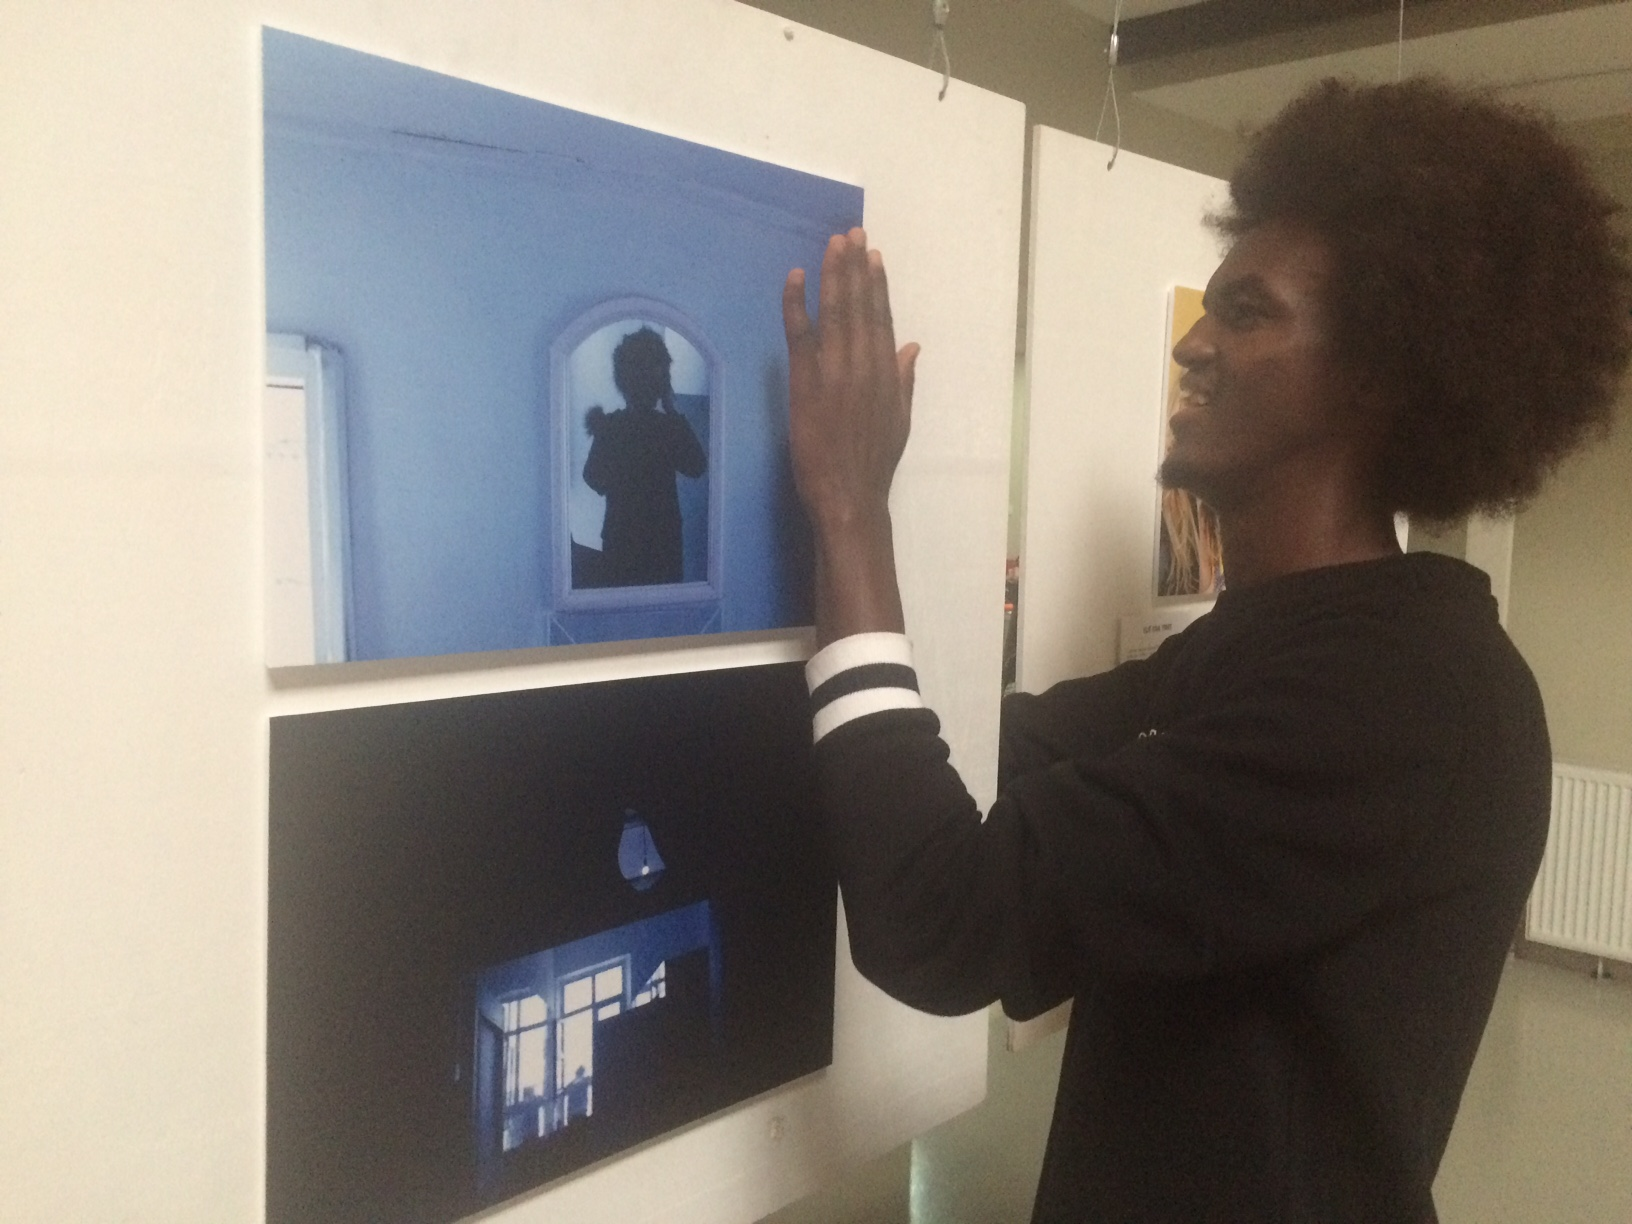 putting up the photographs